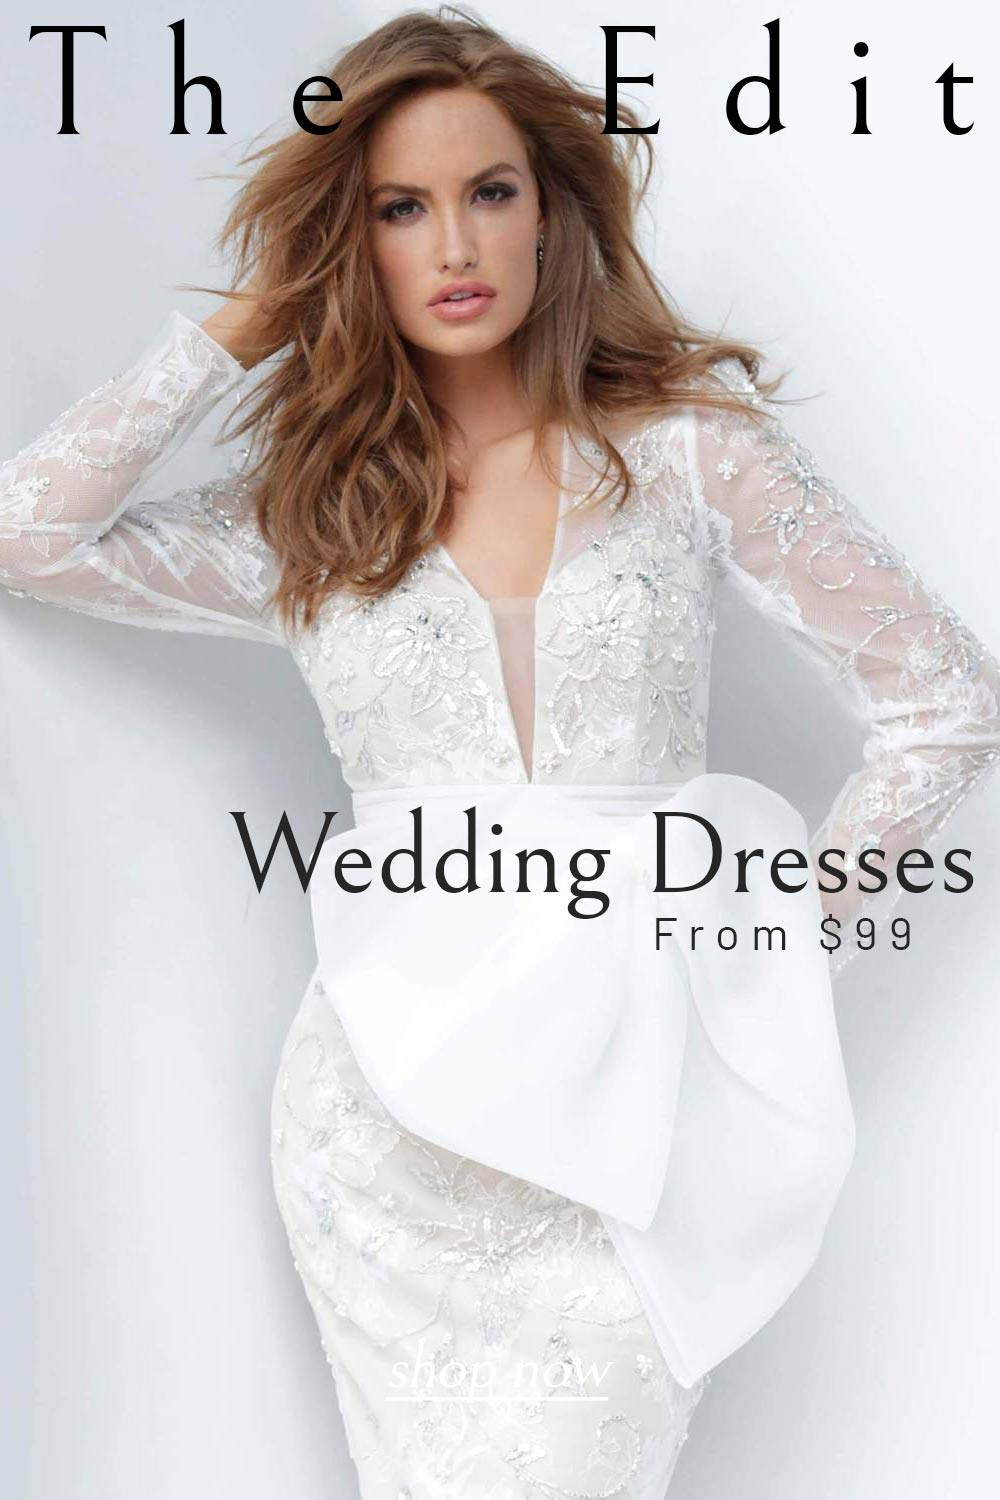 Wedding Dresses From $99